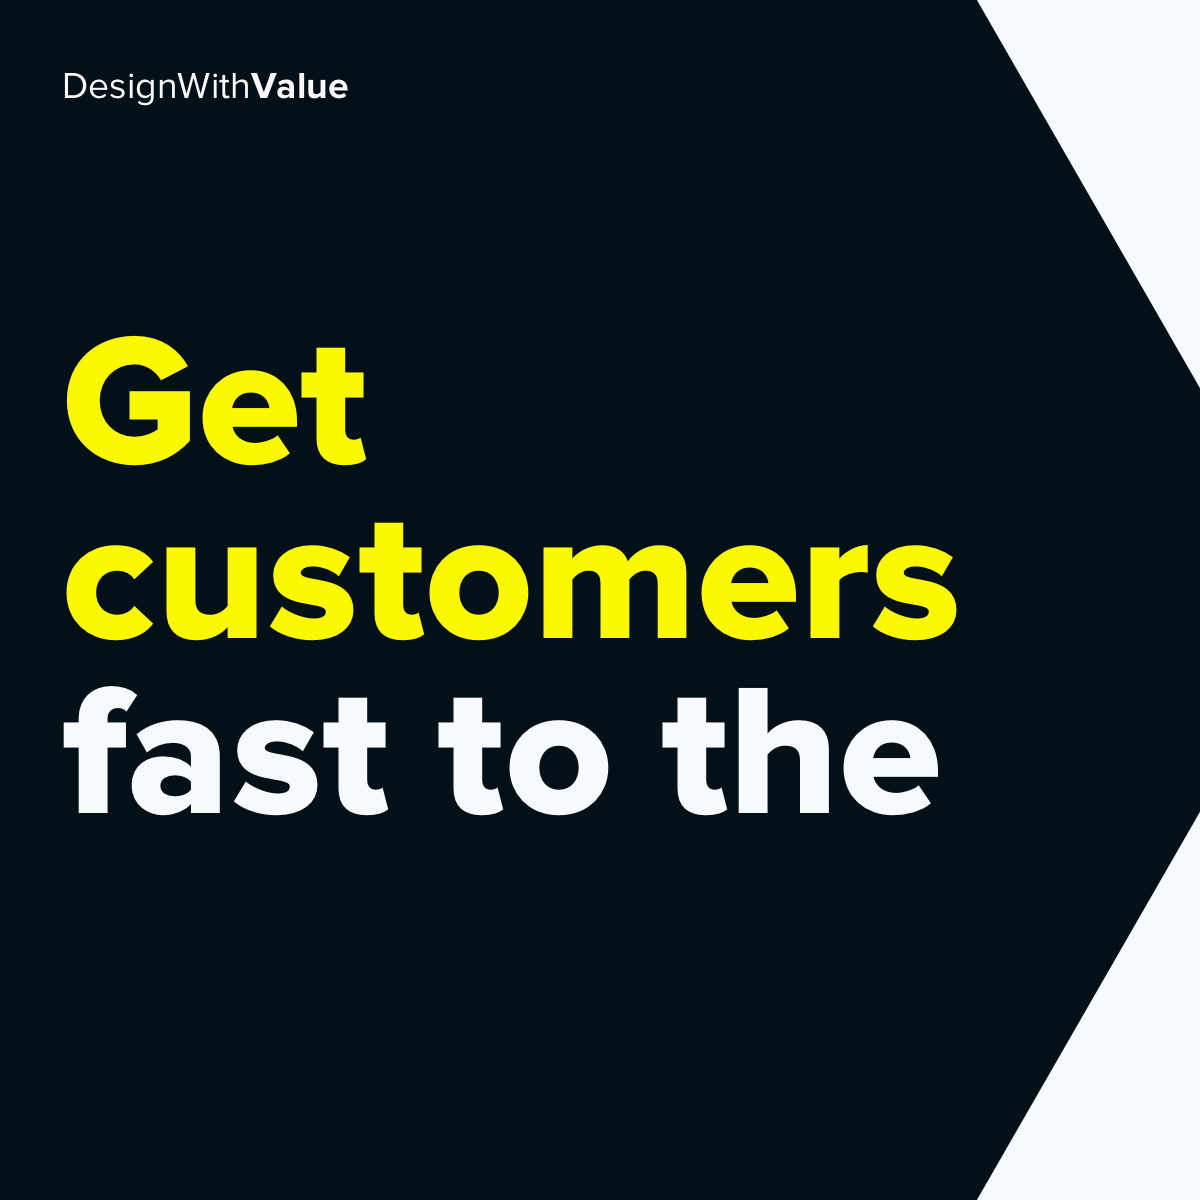 Get customers fast to the...